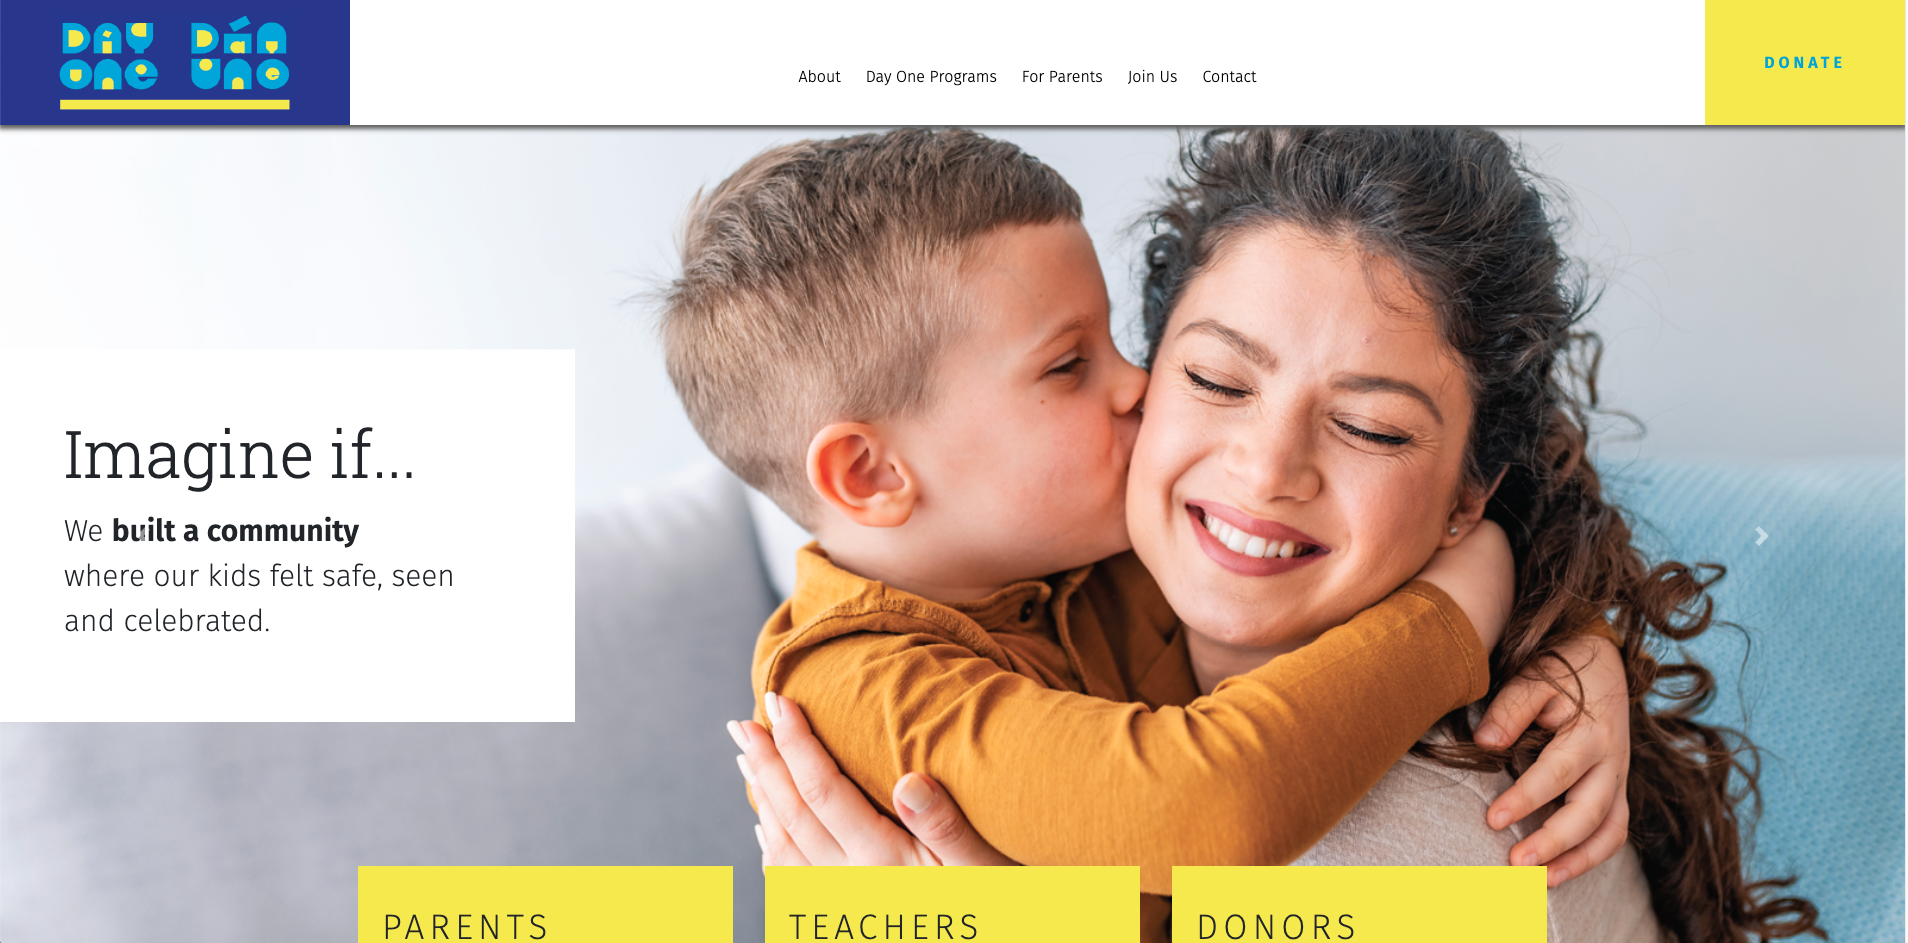 screen shot of a early learning community website